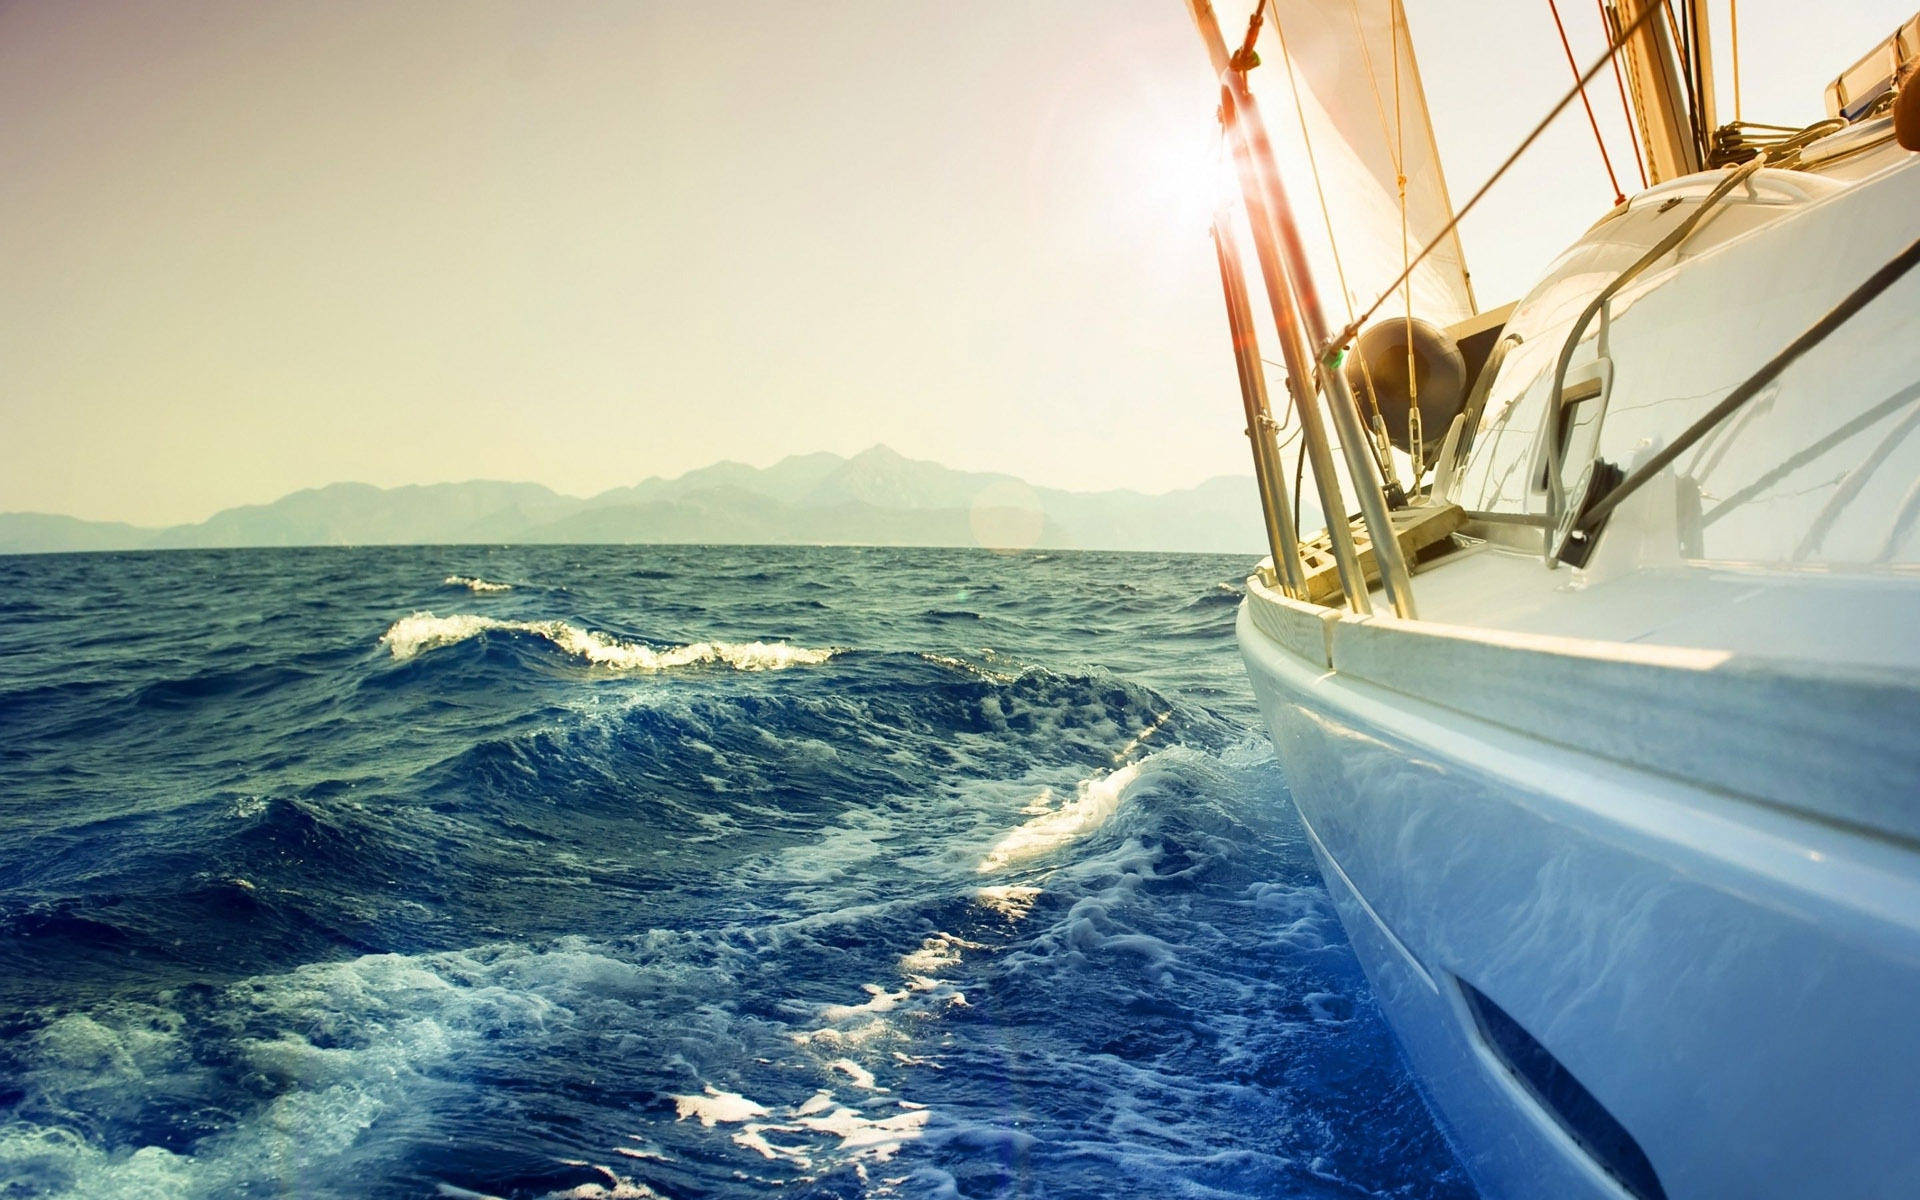 Sailing Wallpapers For Download